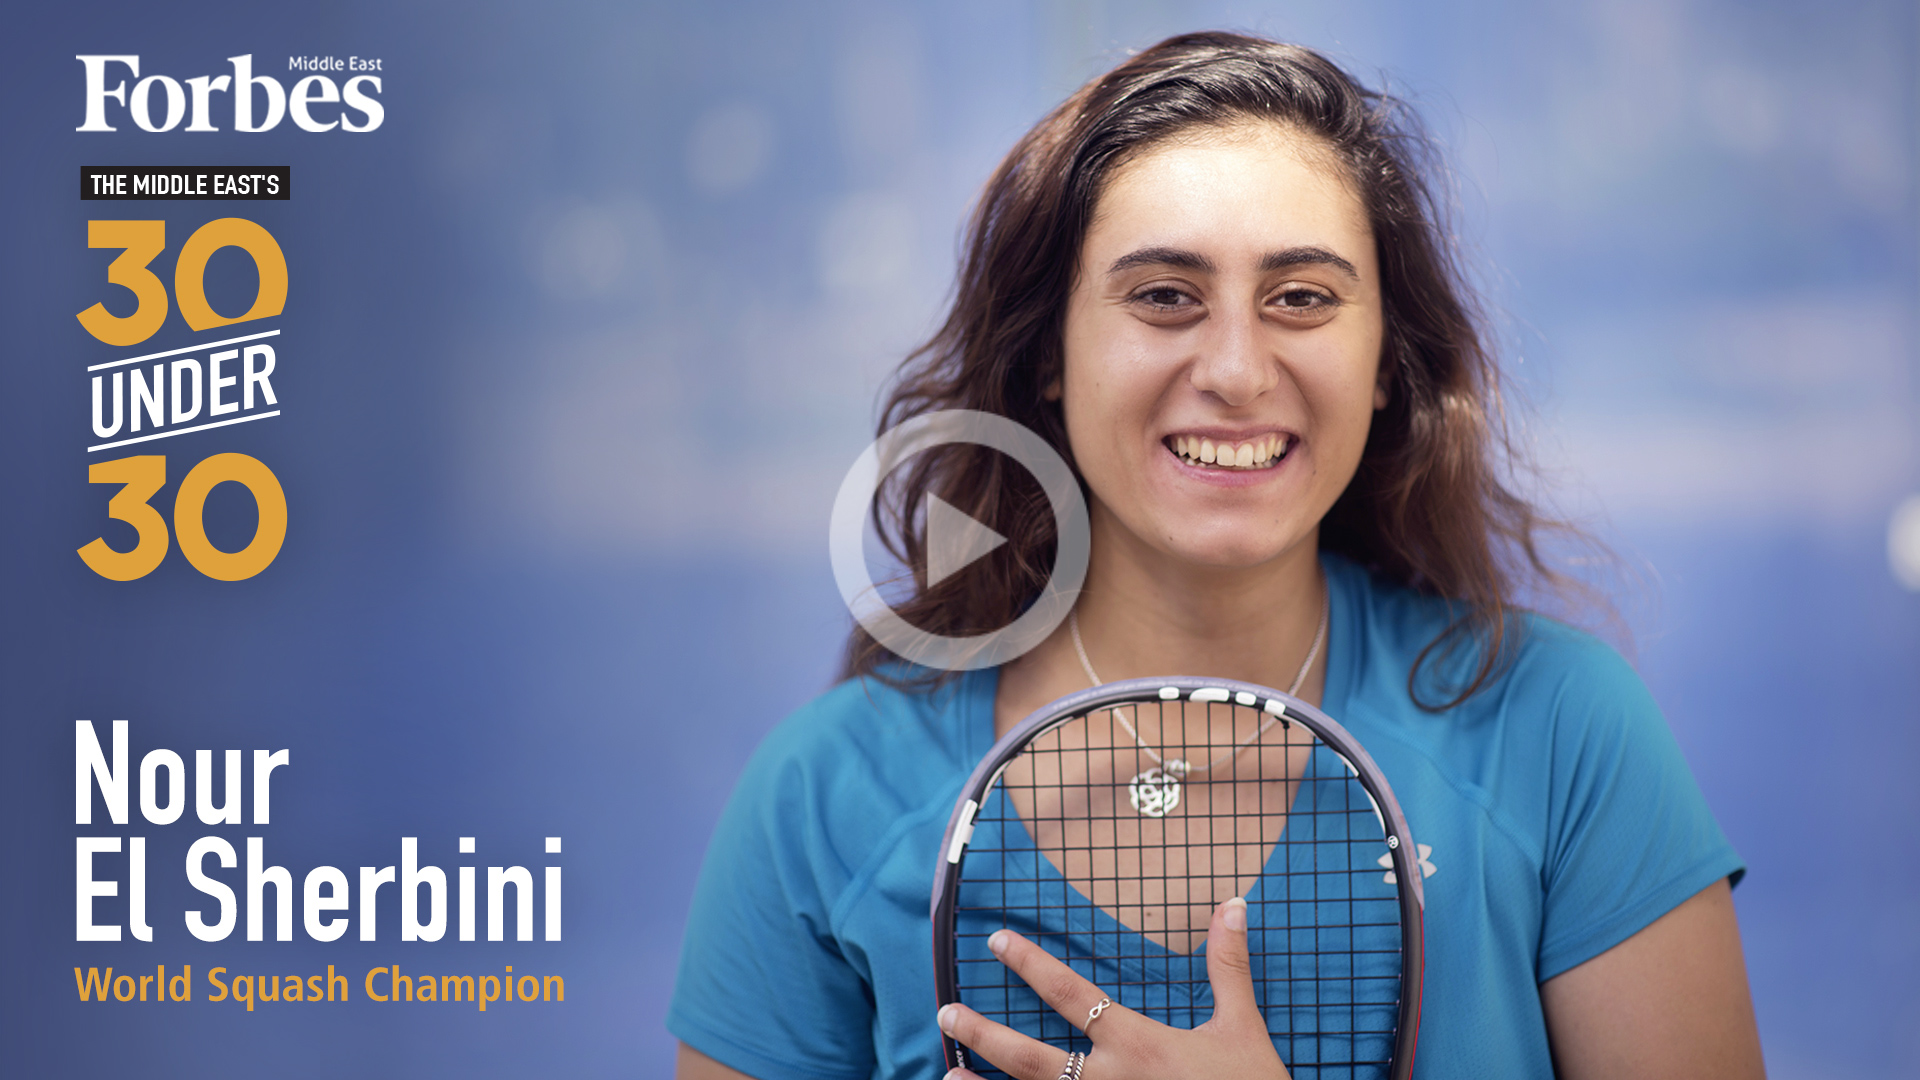 Squash Champion Nour El Sherbini On Her Rise To The Top